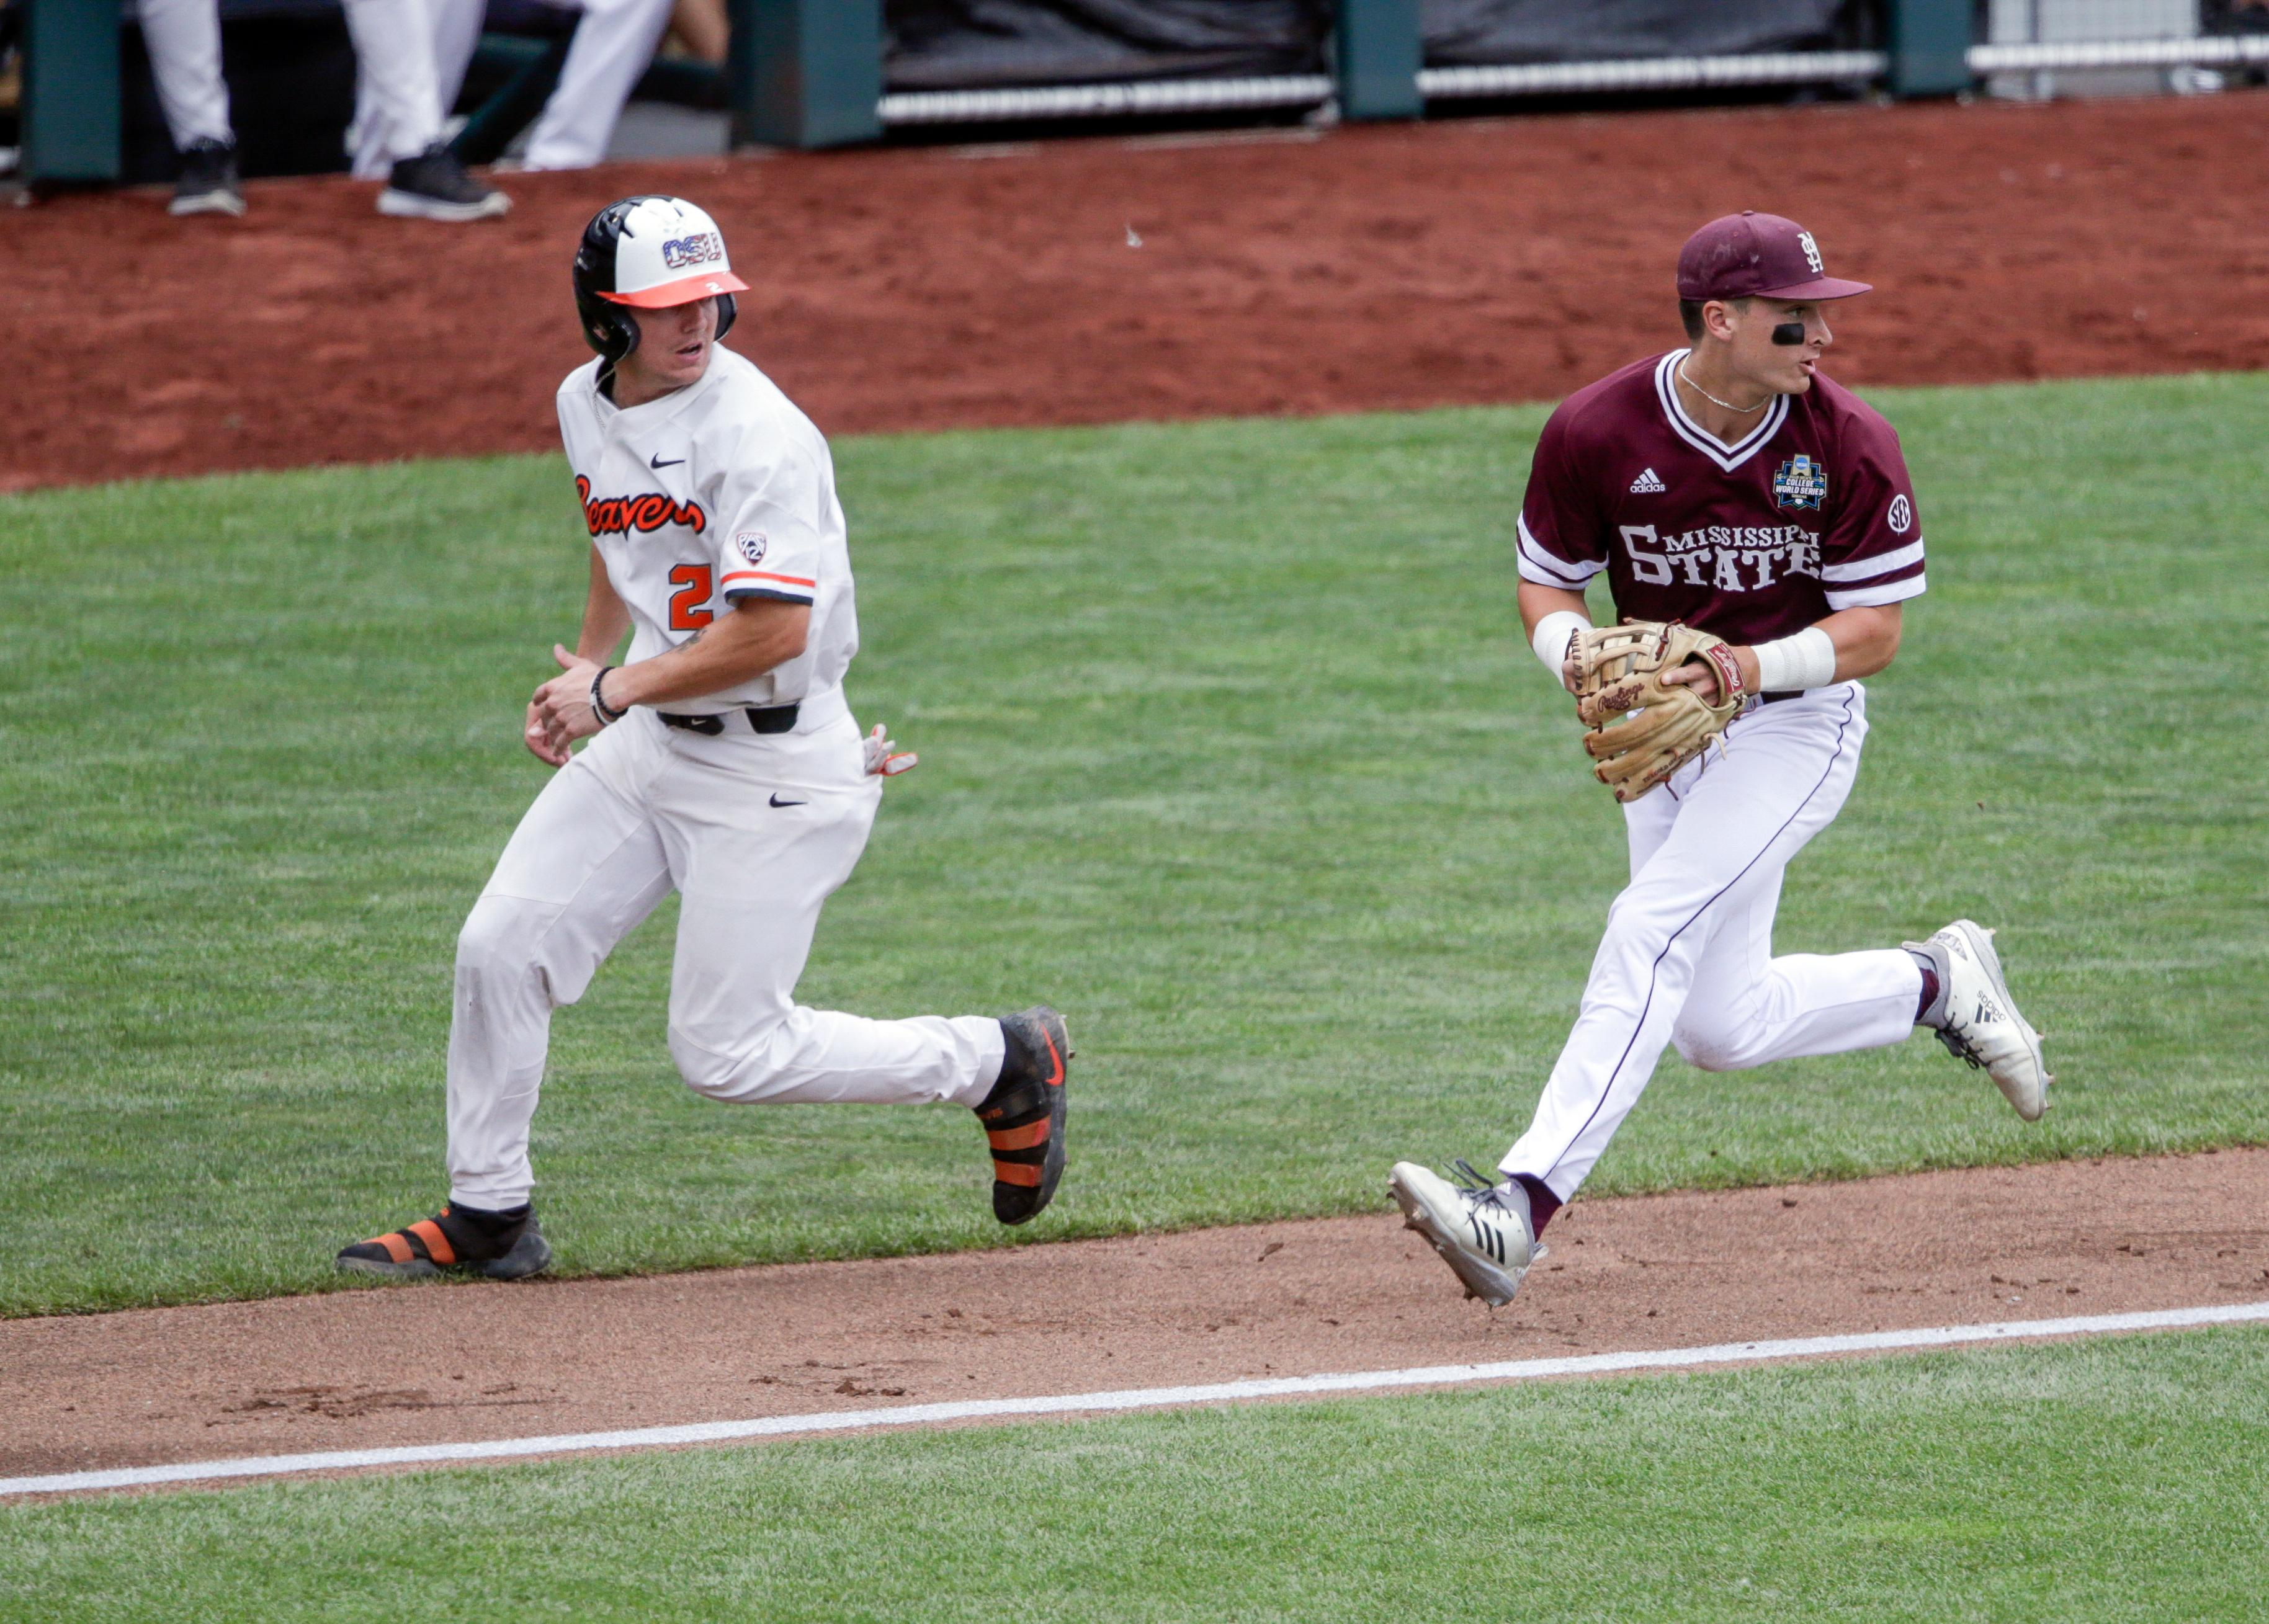 Mississippi State third baseman Justin Foscue, looks toward second base after tagging out Oregon State's Cadyn Grenier (2) in a rundown between third base and home in the first inning of an NCAA College World Series baseball game in Omaha, Neb., Friday, June 22, 2018. (AP Photo/Nati Harnik) right,